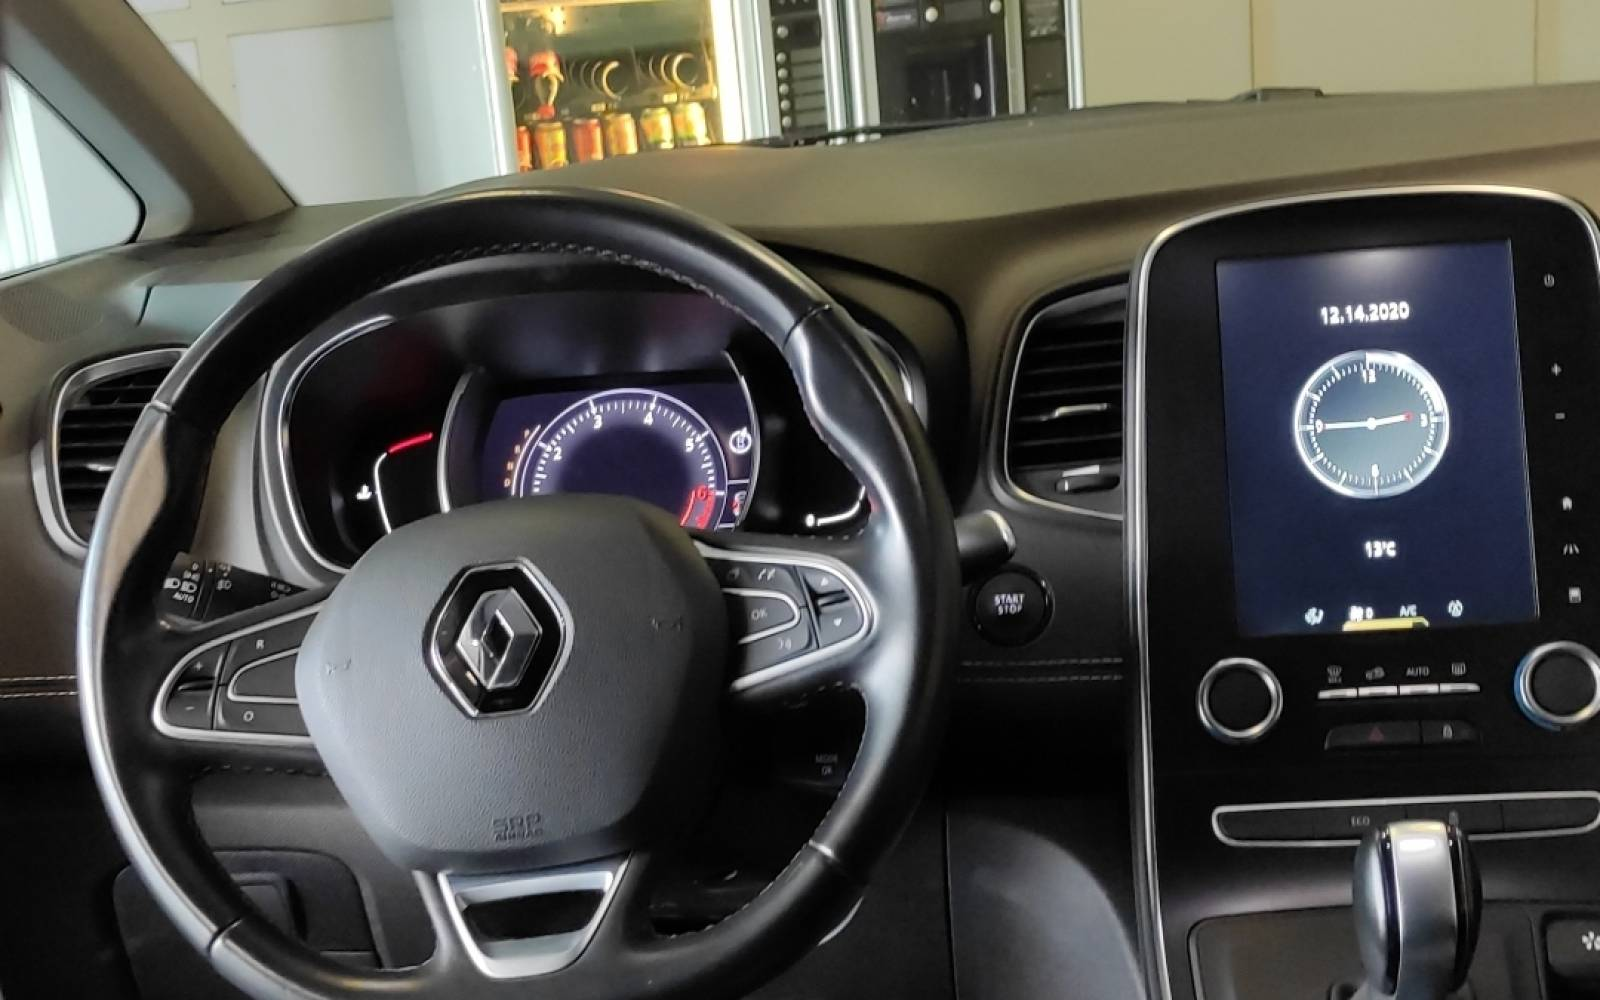 RENAULT Grand Scénic TCe 160 Energy EDC - véhicule d'occasion - Site Internet Faurie - Sarda - 24750 - Trelissac - 10